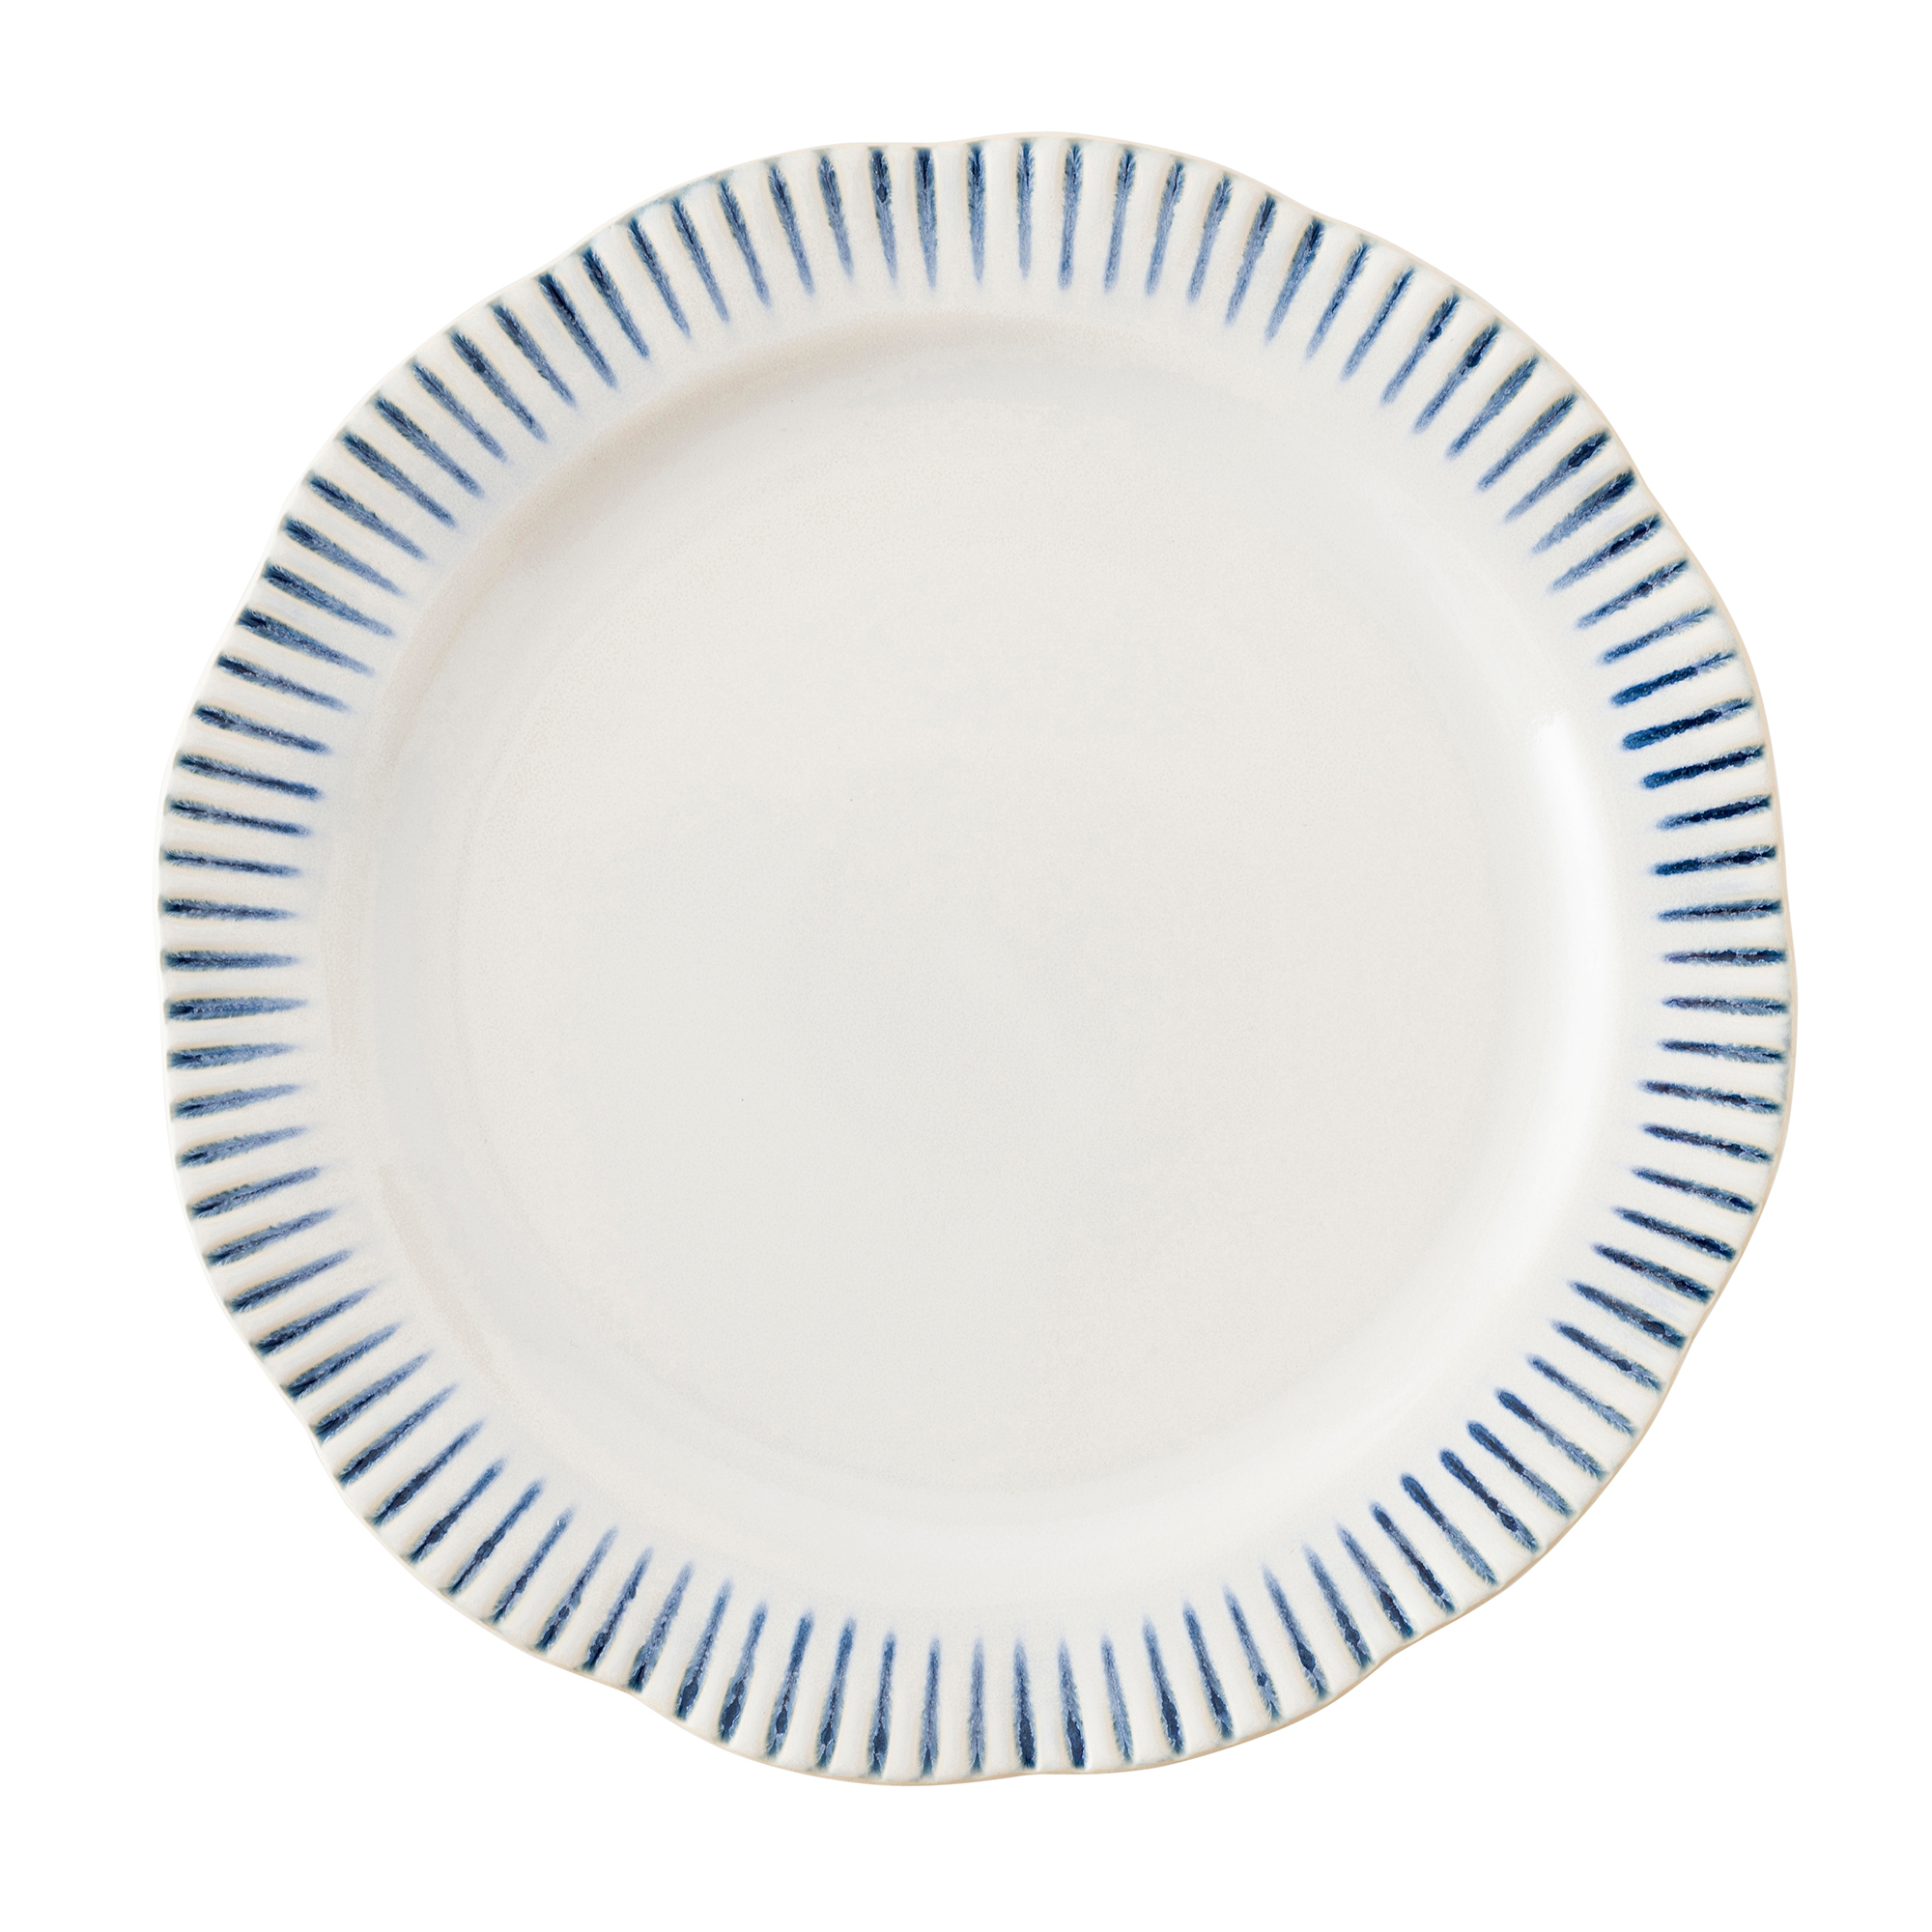 Juliska Sitio Stripe Dinner Plate, Indigo